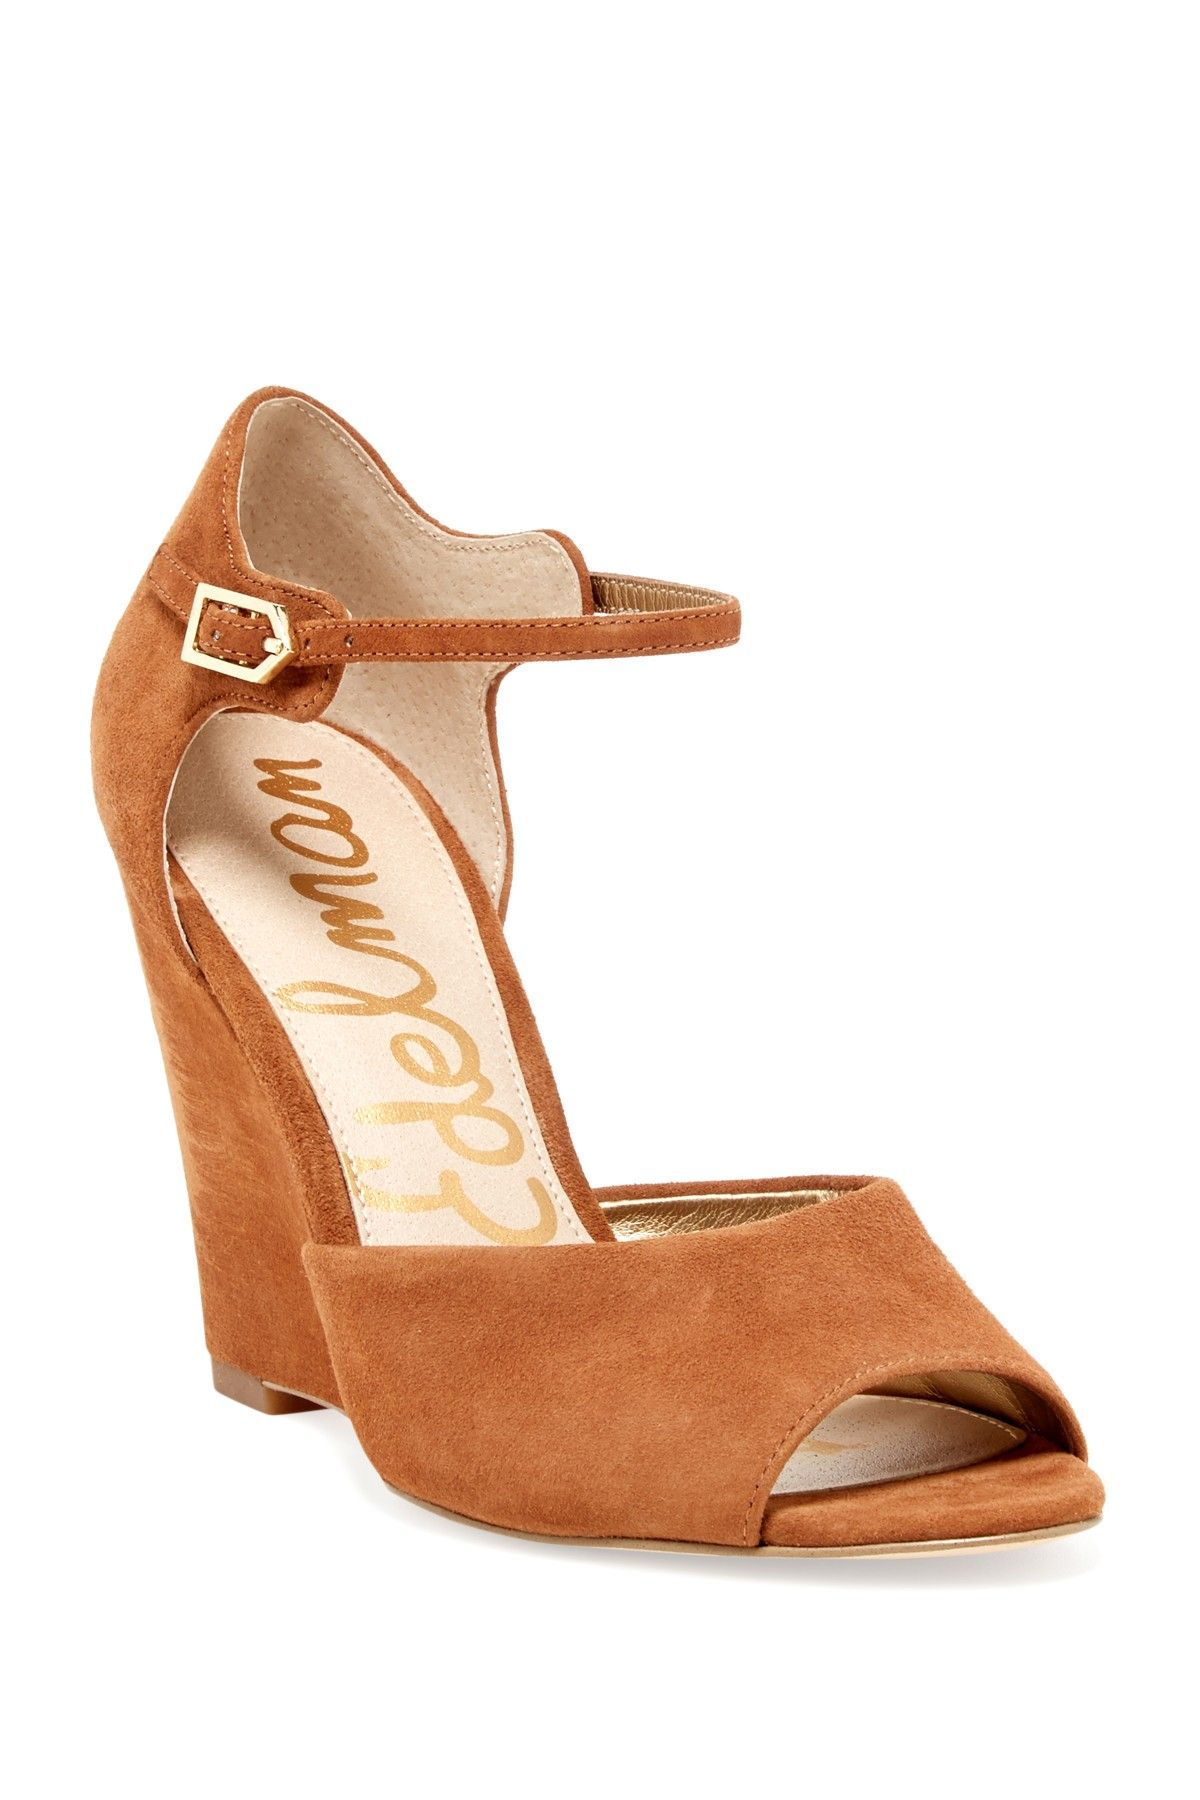 Sam Edelman - Raven Open Toe Ankle Strap Wedge at Nordstrom Rack. Free  Shipping on